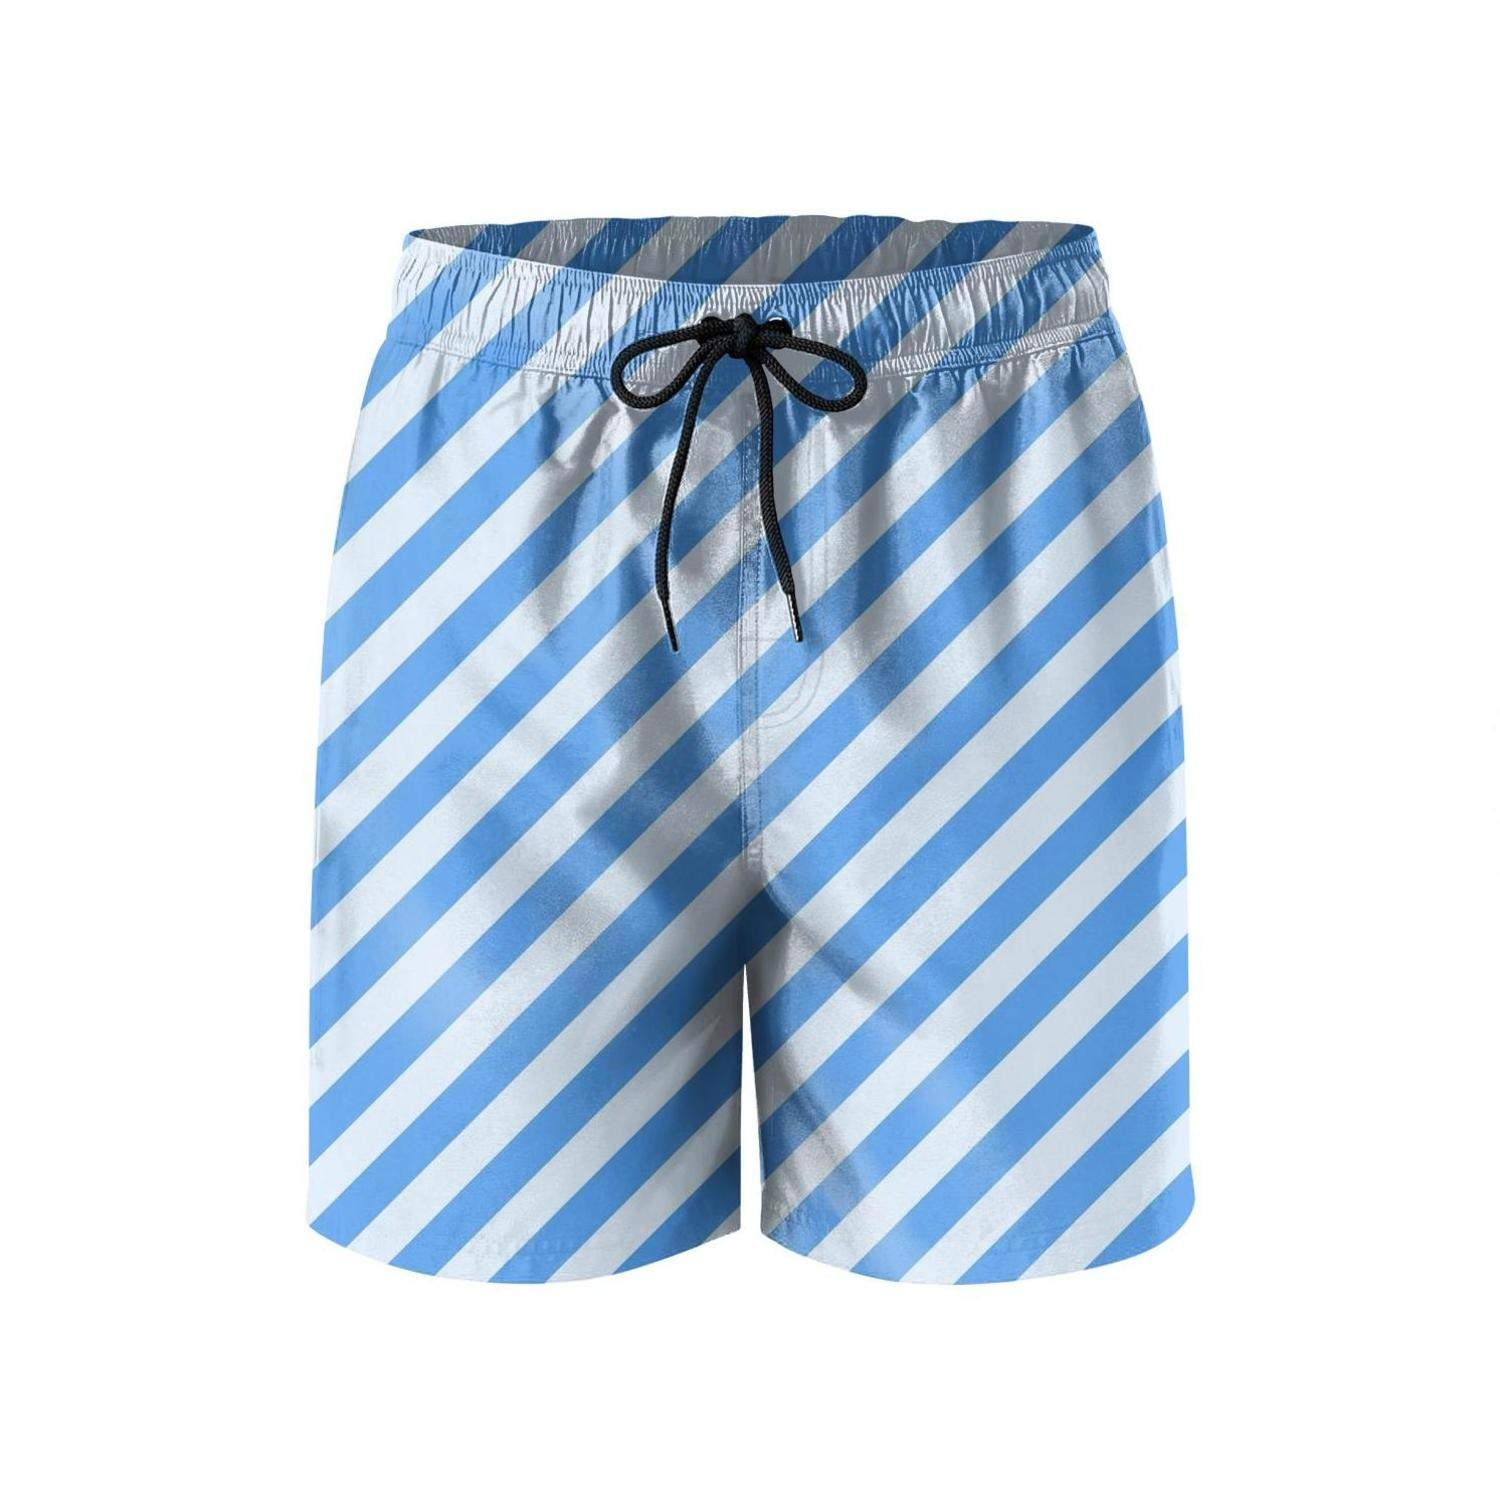 PPANFKEI Colorful Diagnal Stripes Mens Swim Trunks Quick-Dry Watershorts for Surfing